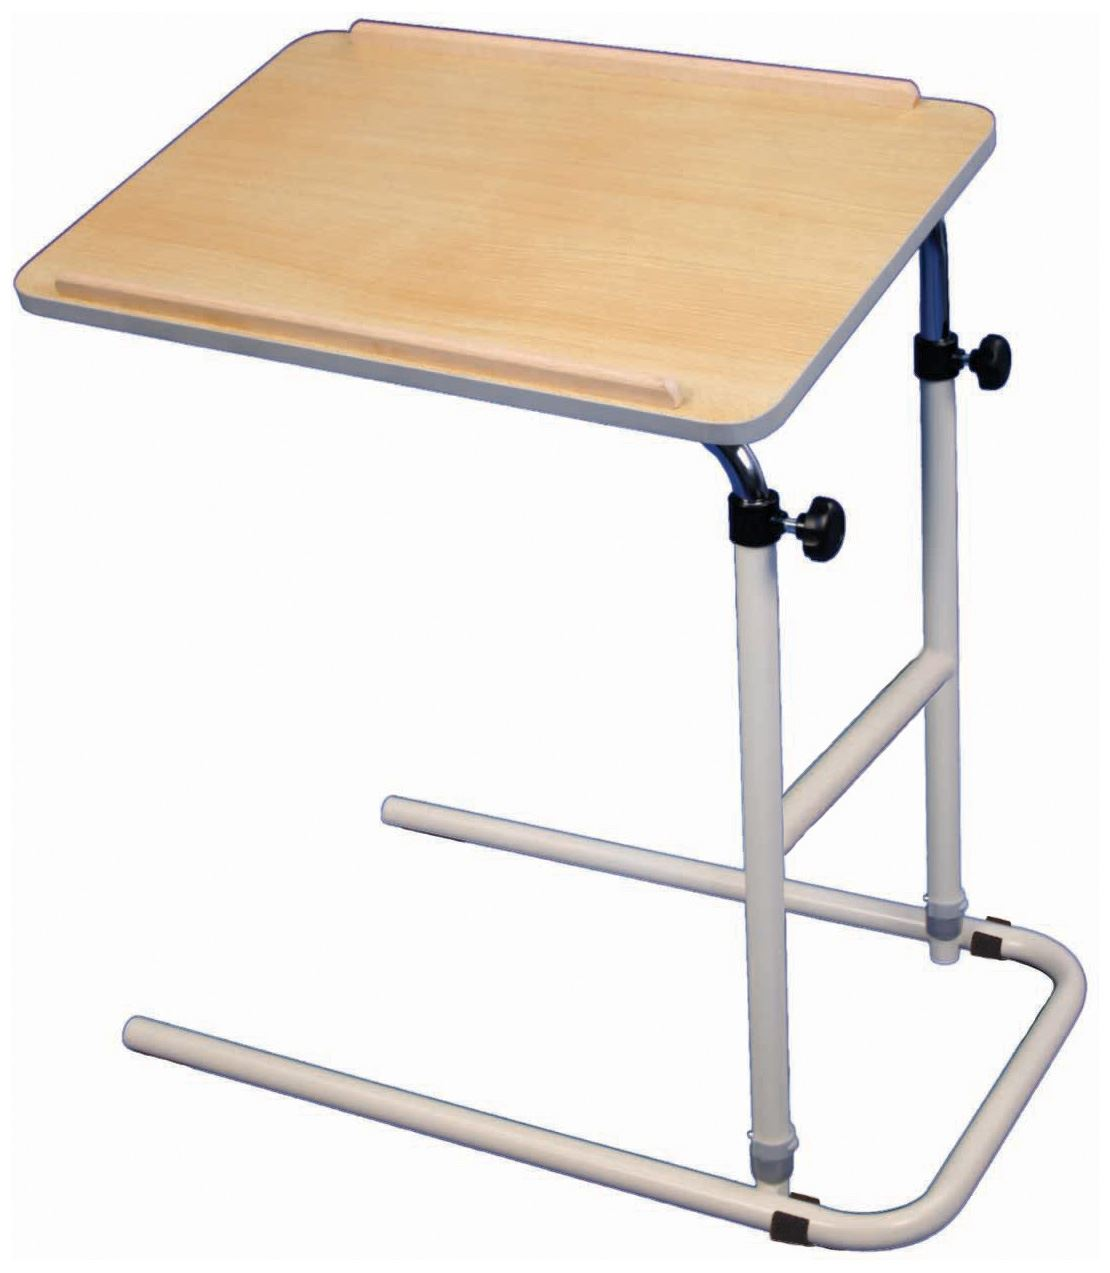 Cantilever over bed or chair table adjustable height tilt for Table bed chair